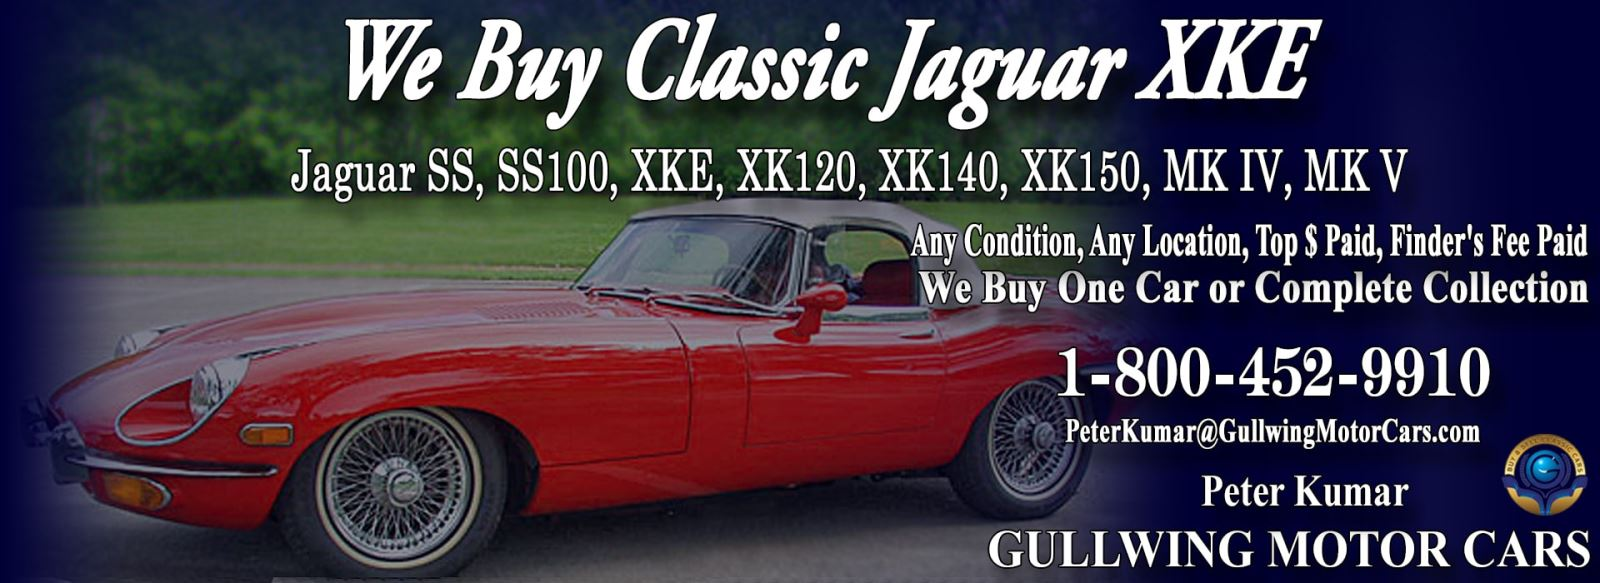 Classic Jaguar for sale, we buy vintage 1972 Jaguar XKE. Call Peter Kumar. Gullwing Motor